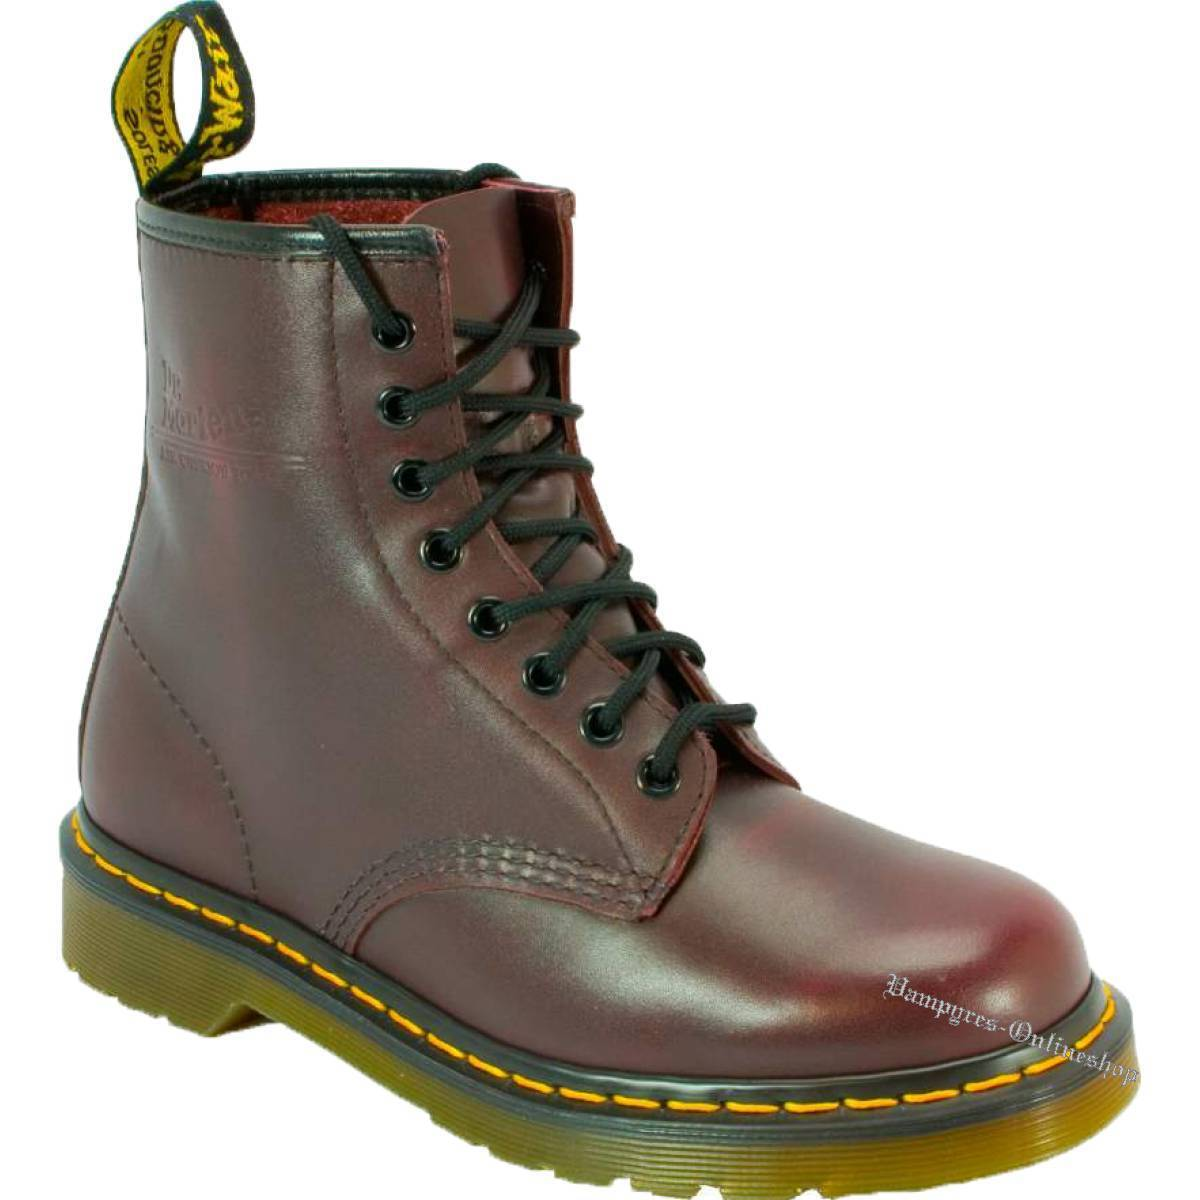 Dr. Martens 1460 ROT Vintage 8-Loch Stiefel Rot 11821602 Docs Stiefel Doc Schuhe